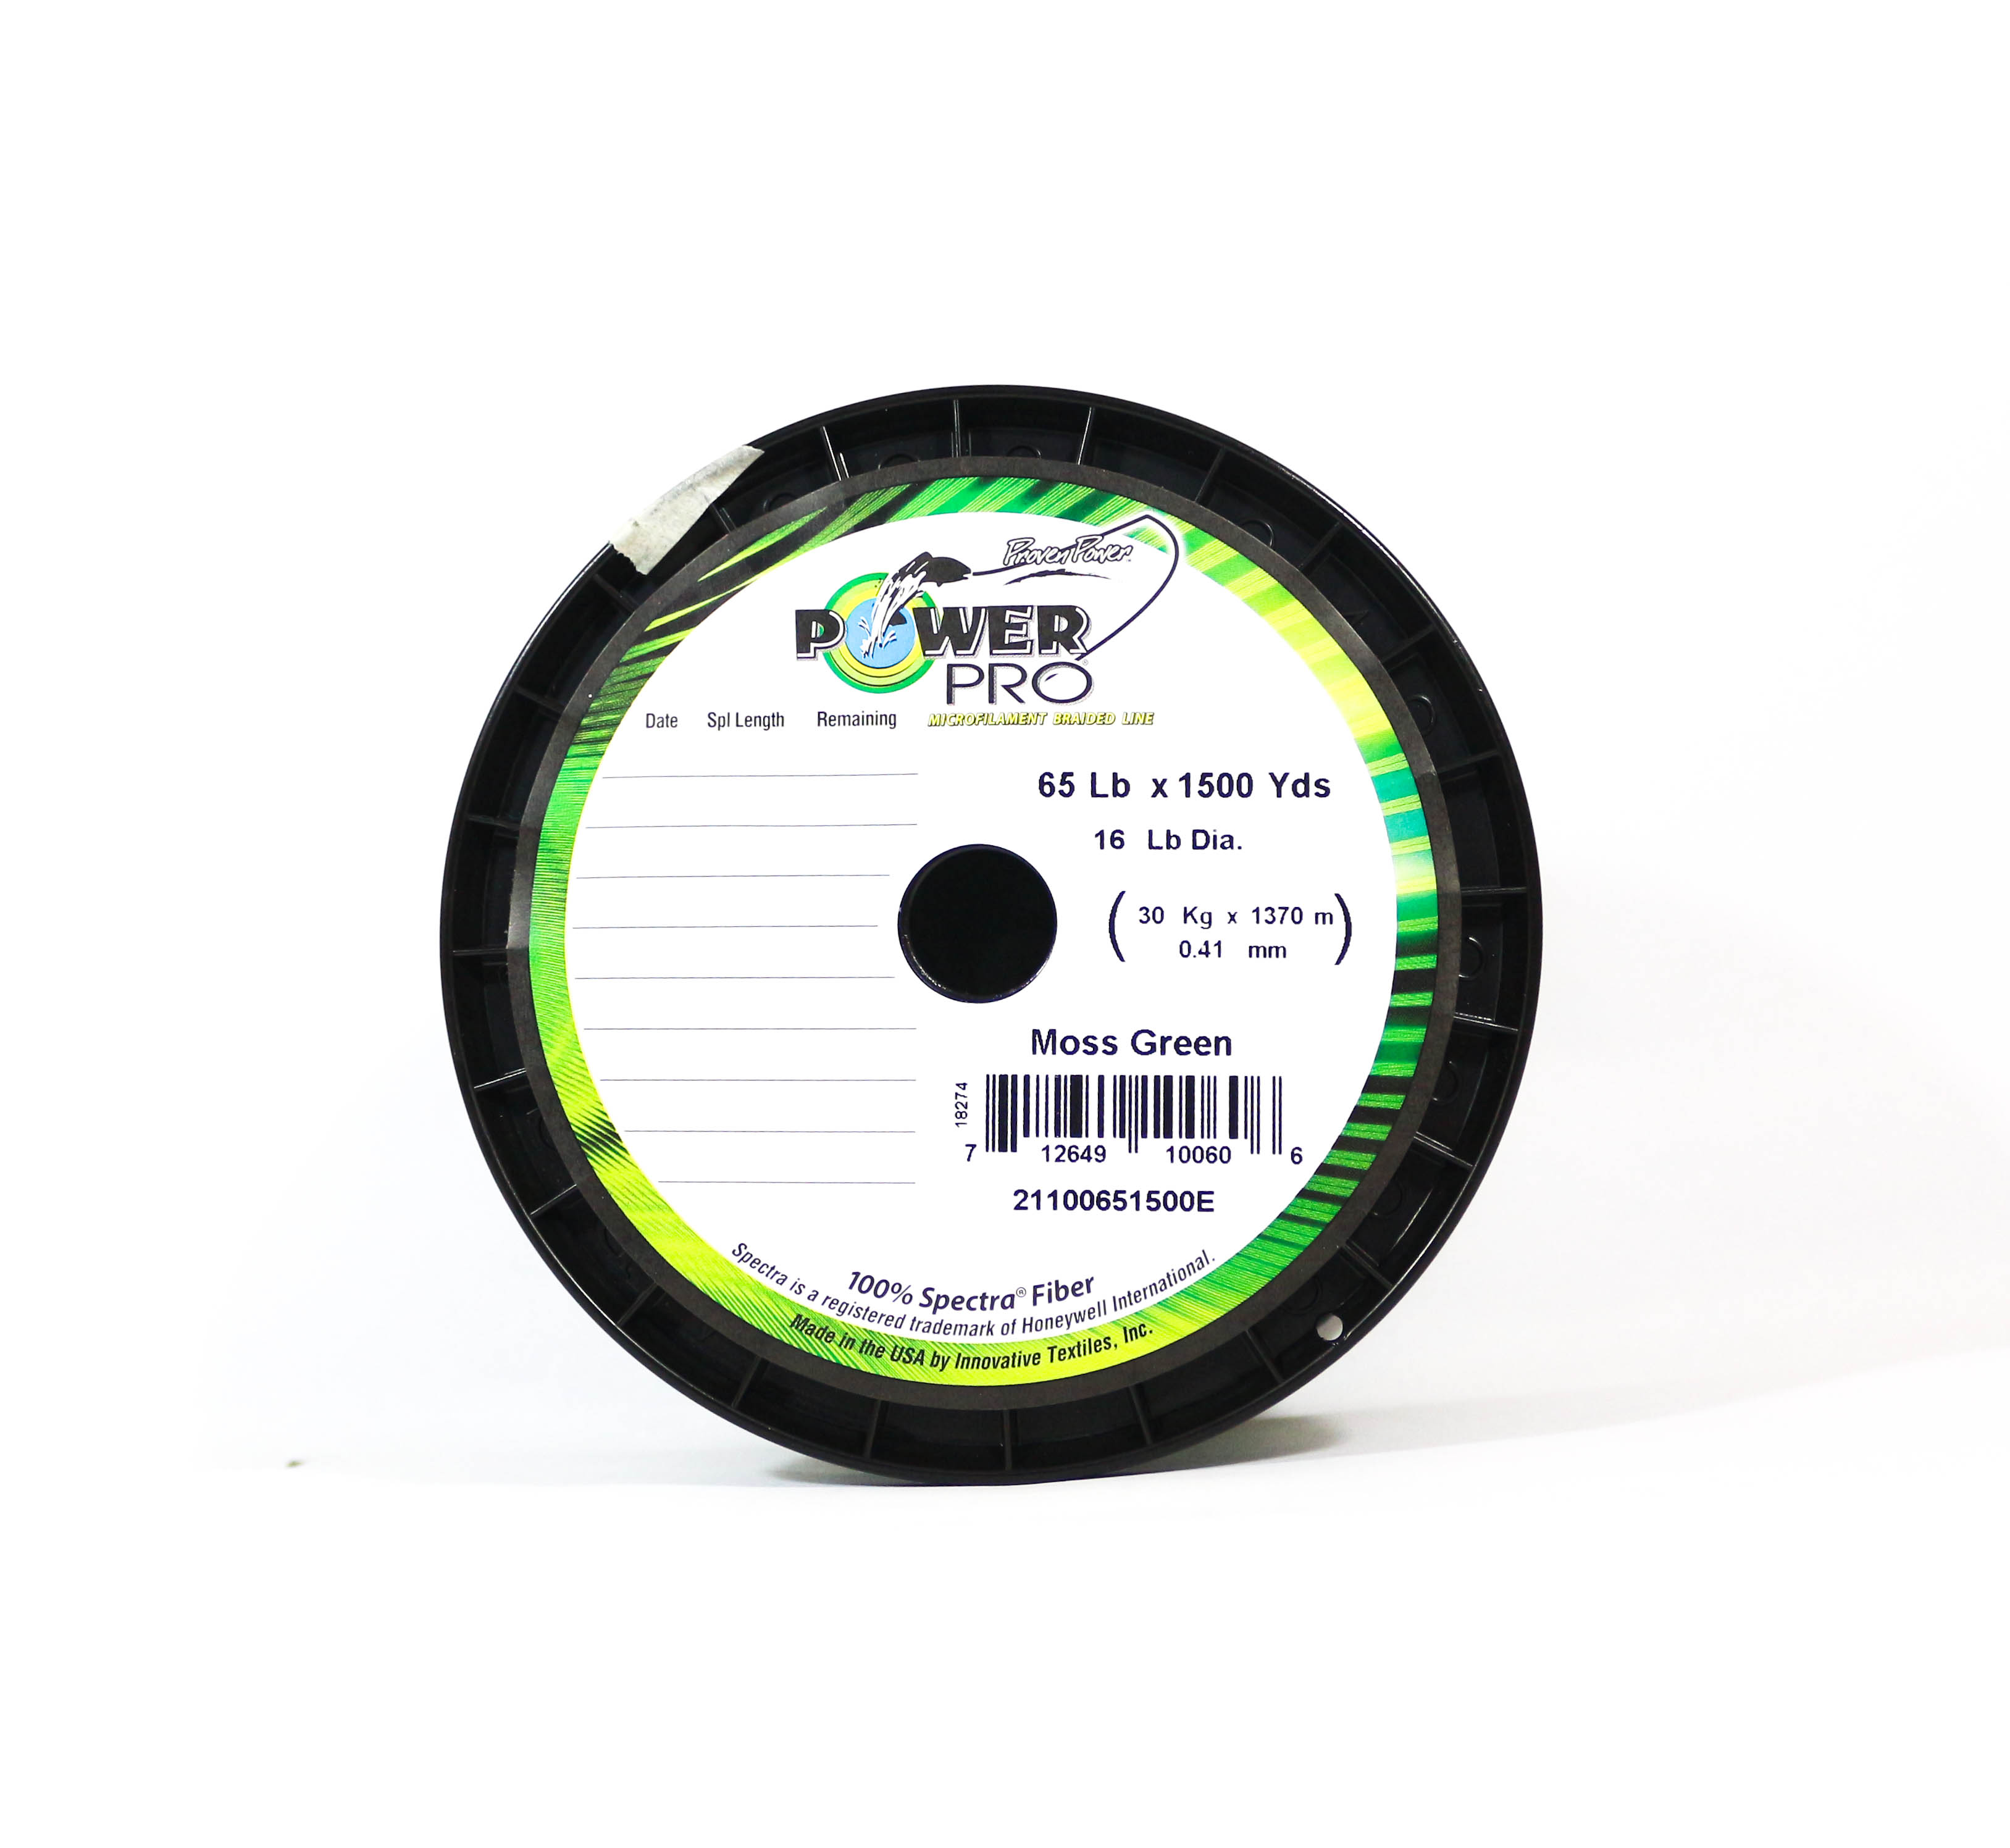 Power Pro Braided Spectra Line 65lb by 1500yds Green (0606)